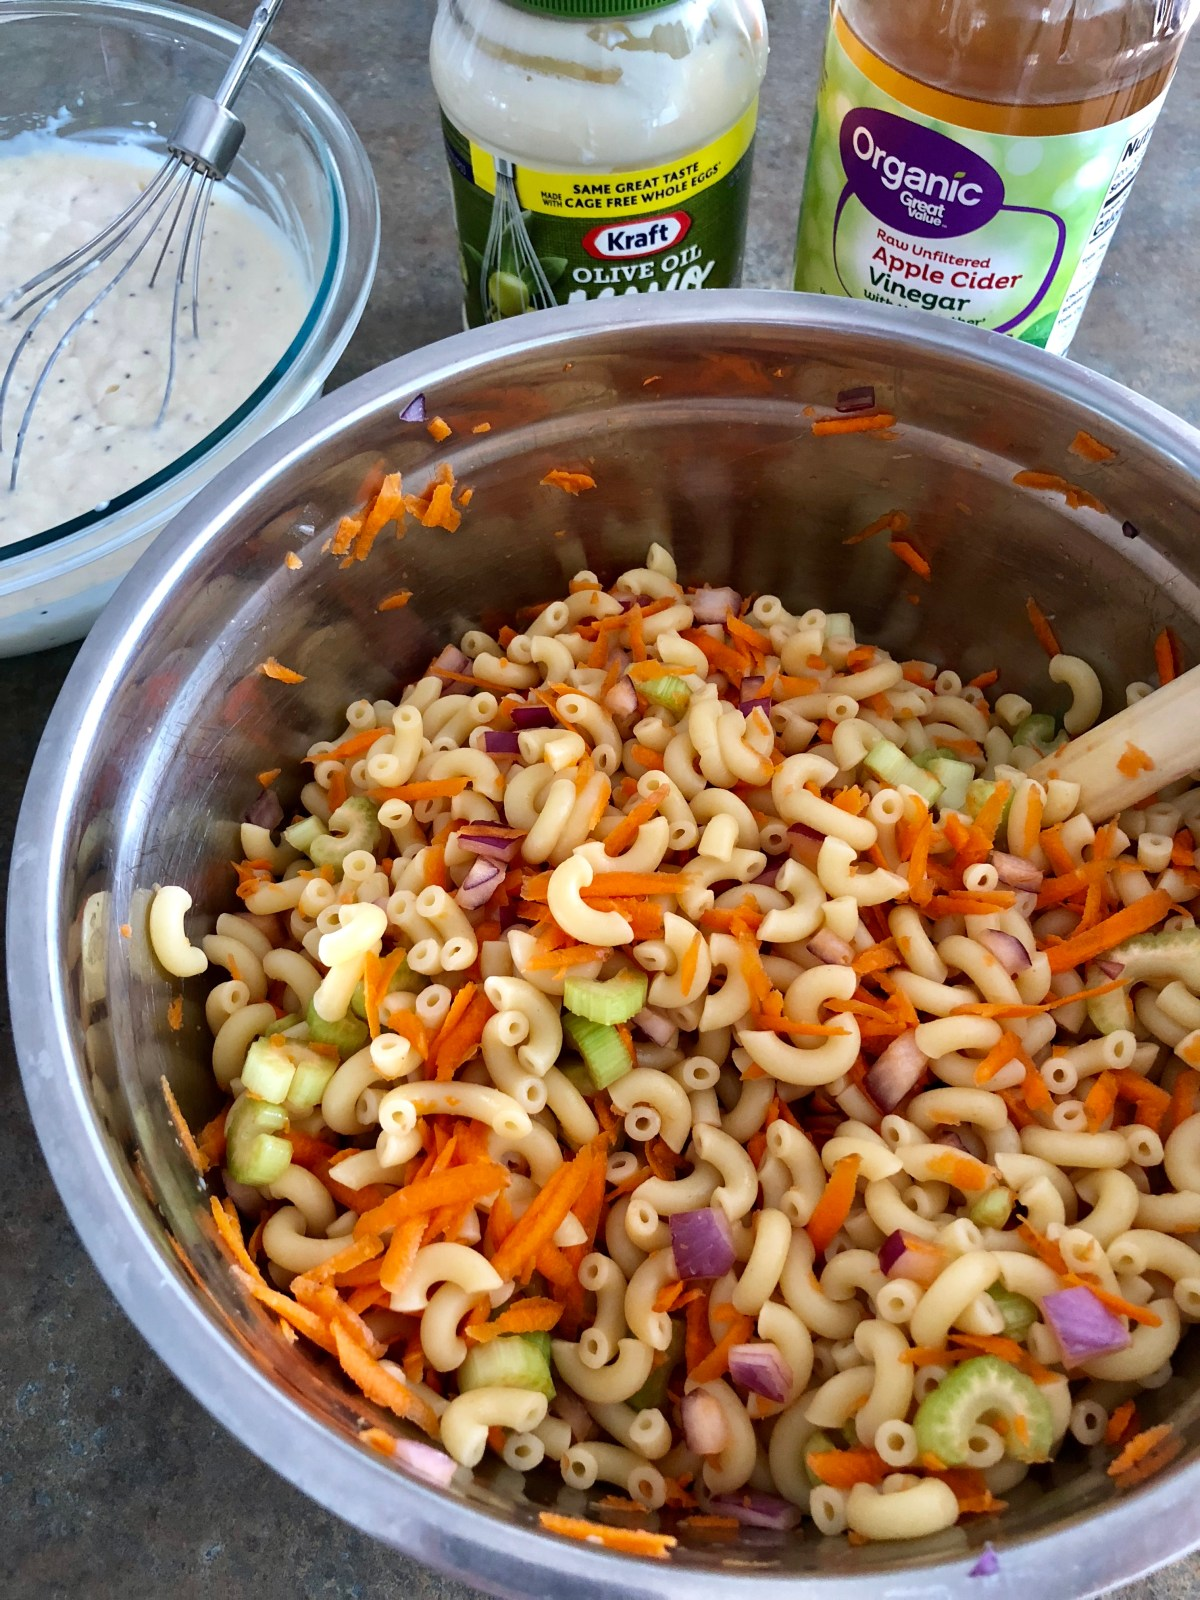 Sweet and Tangy Macaroni Salad by Happylifeblogspot@yahoo.com #macaronisalad #sweetmacaronisalad #pastasalad #potluckrecipes #summersidedish